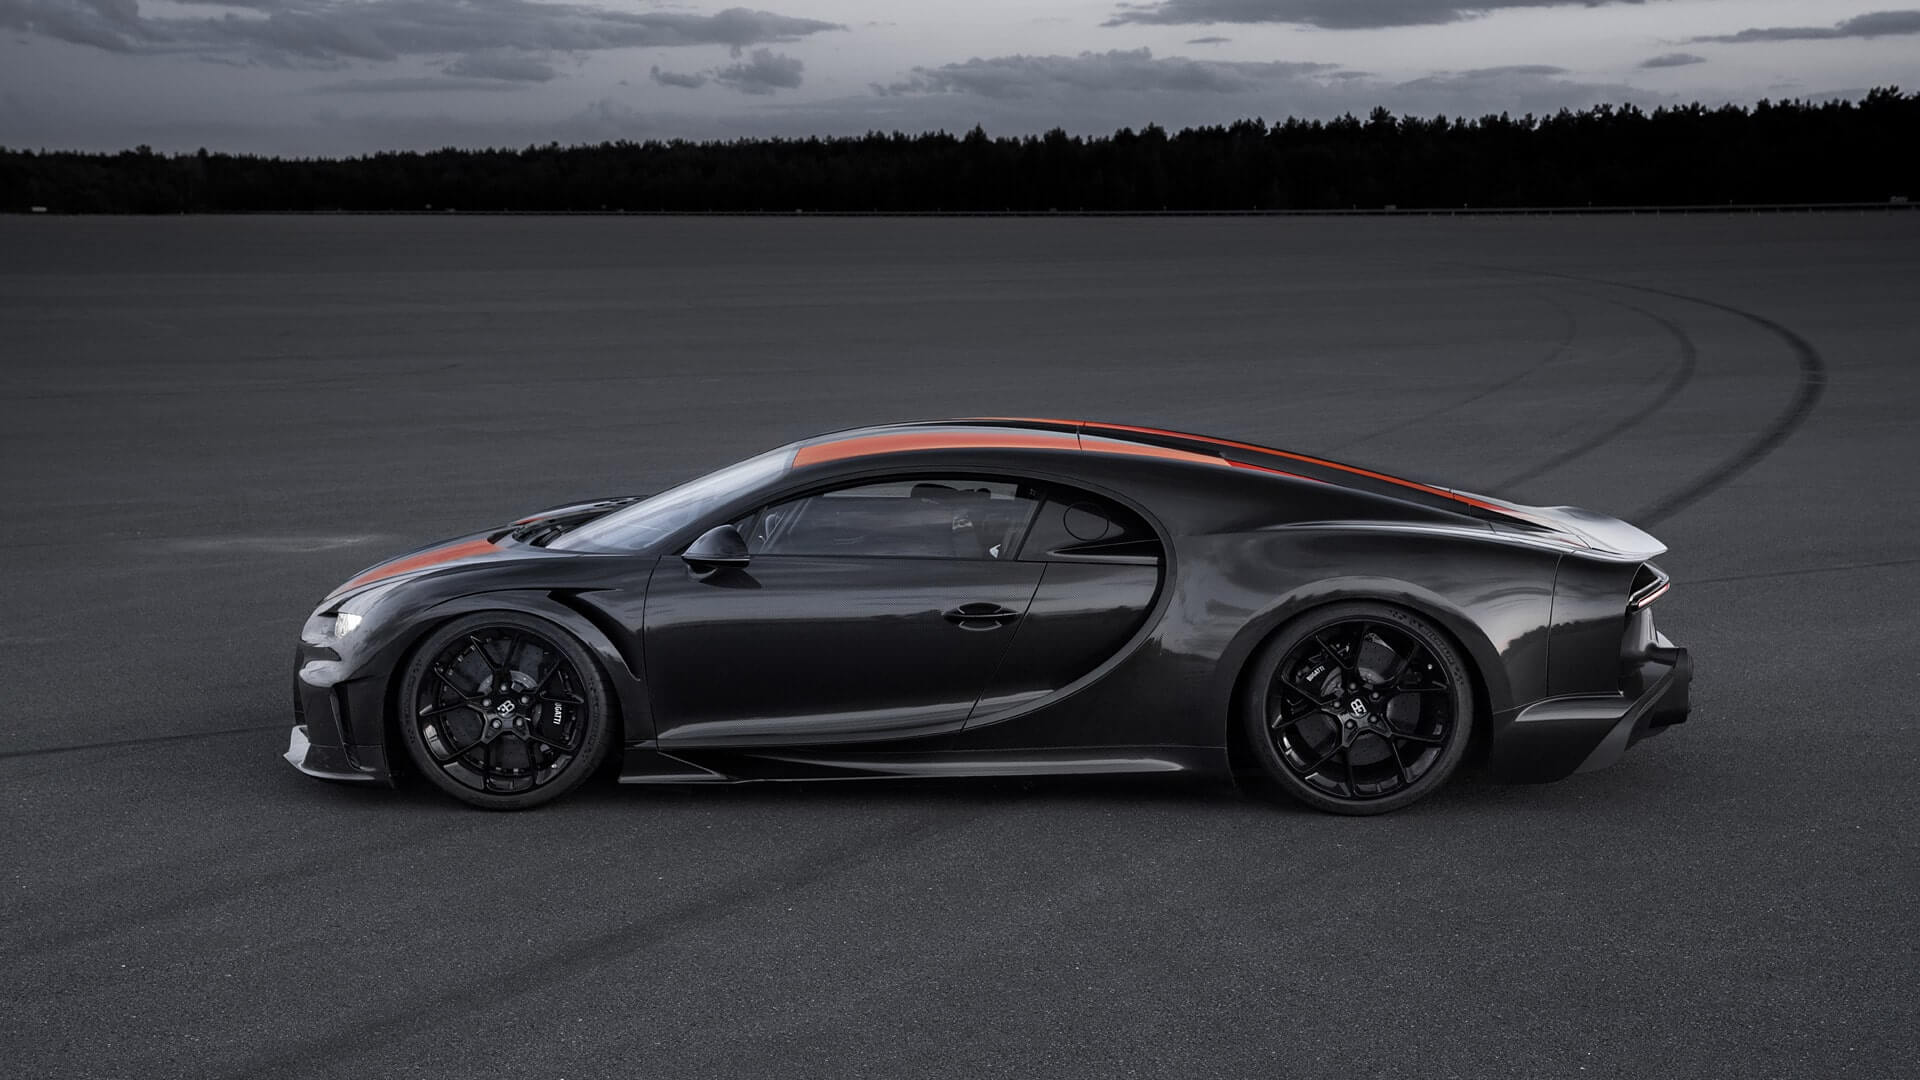 Bugatti Chiron Super Sport from a side